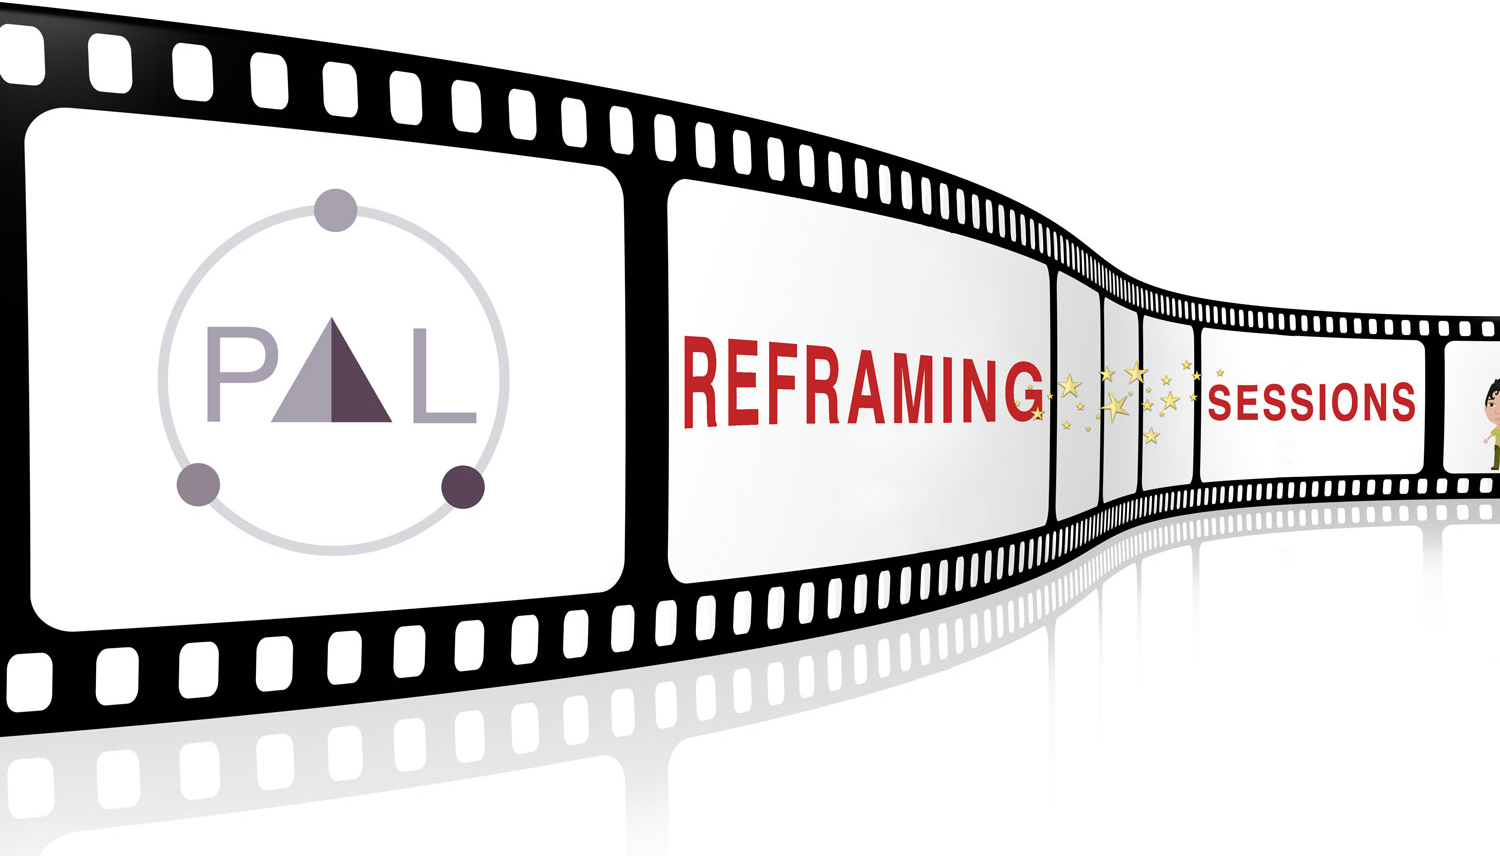 Reframing Sessions